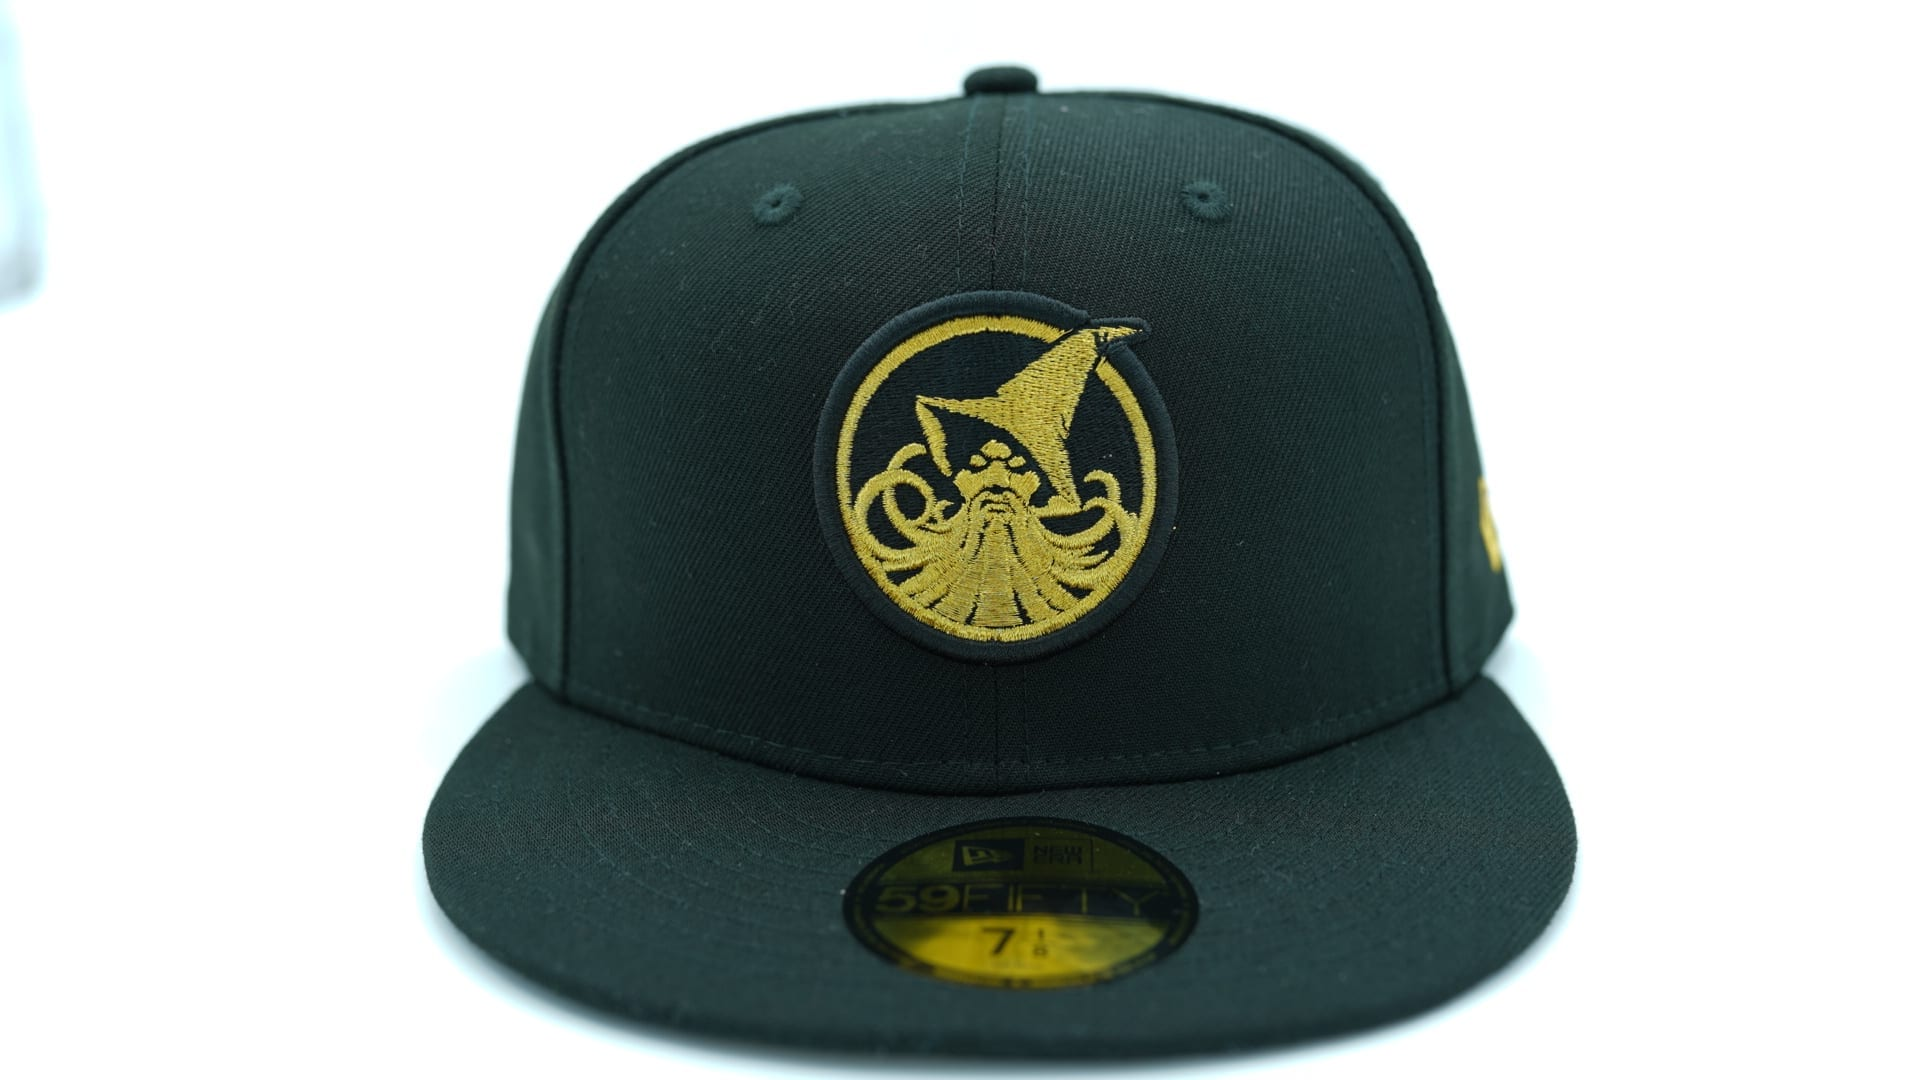 new-era-x-nfl-speckle-fitted-cap-2-web